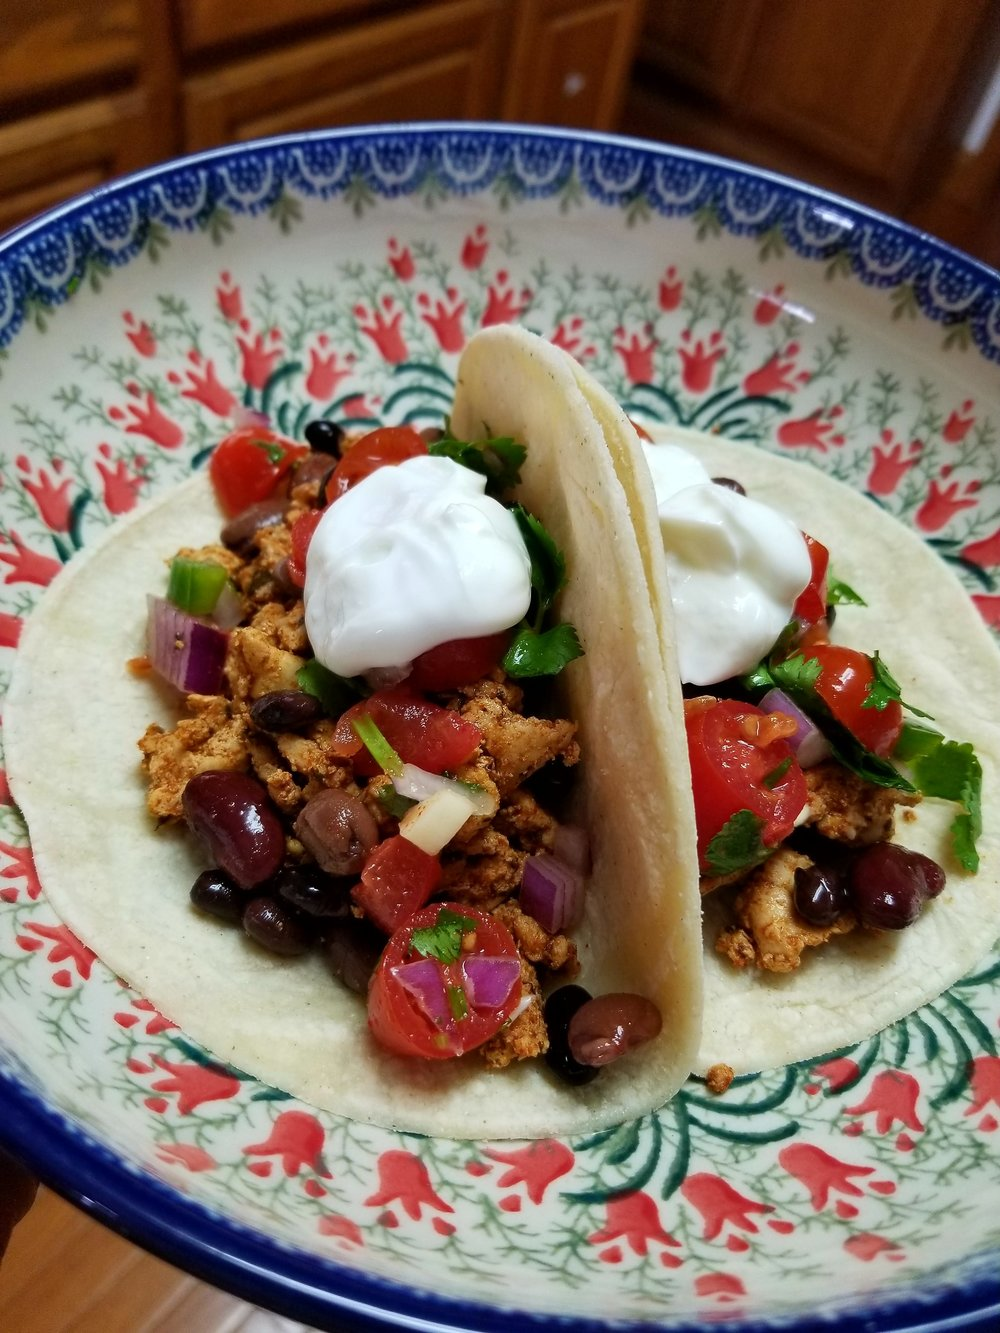 Who doesn't love a good taco?!? It's so easy to use leftovers to make delicious and gorgeous new dishes!